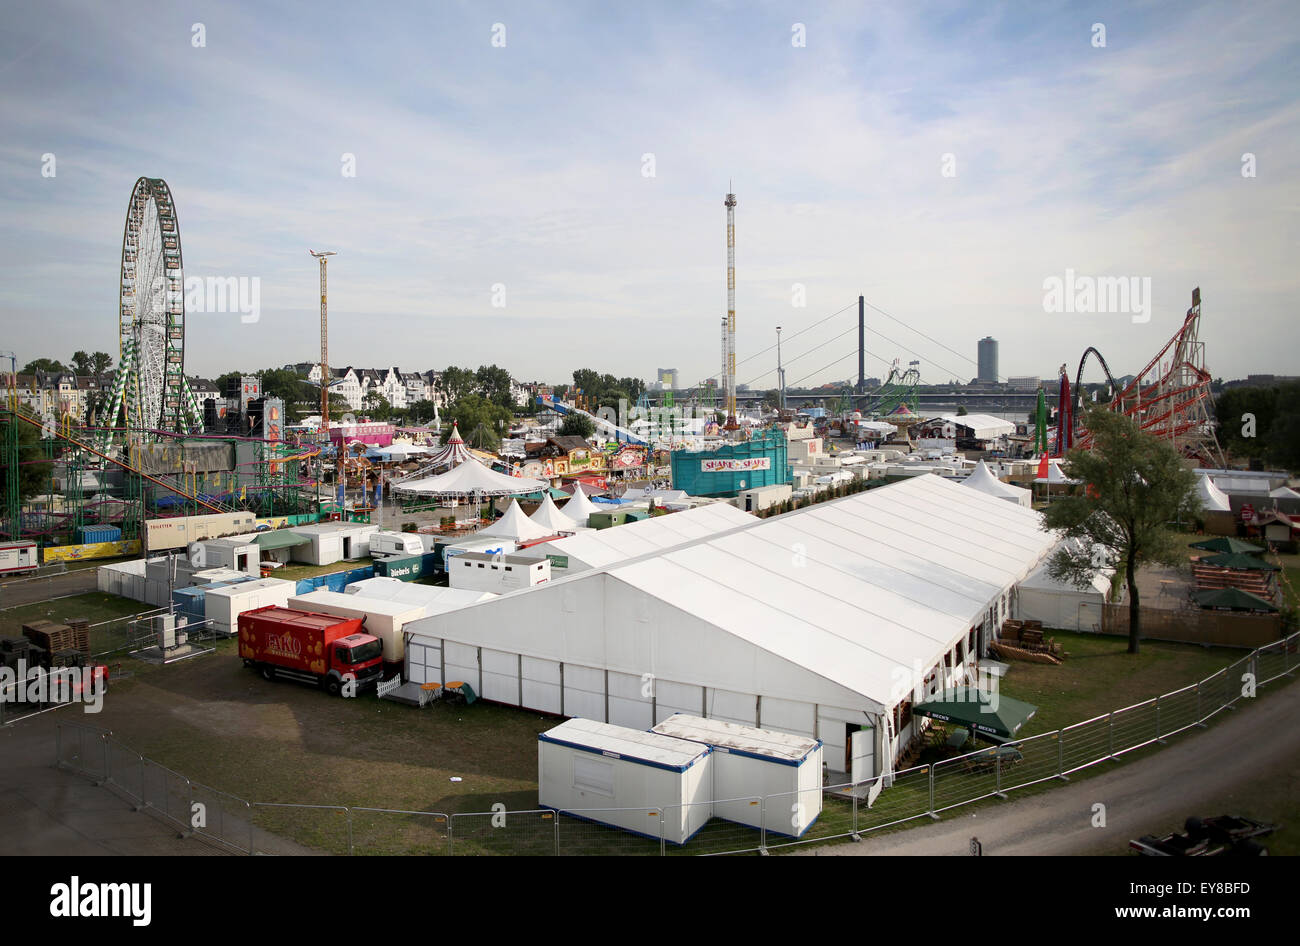 Duesseldorf, Germany. 24th July, 2015. A general view over festival tents at the fairground in Duesseldorf, Germany, Stock Photo